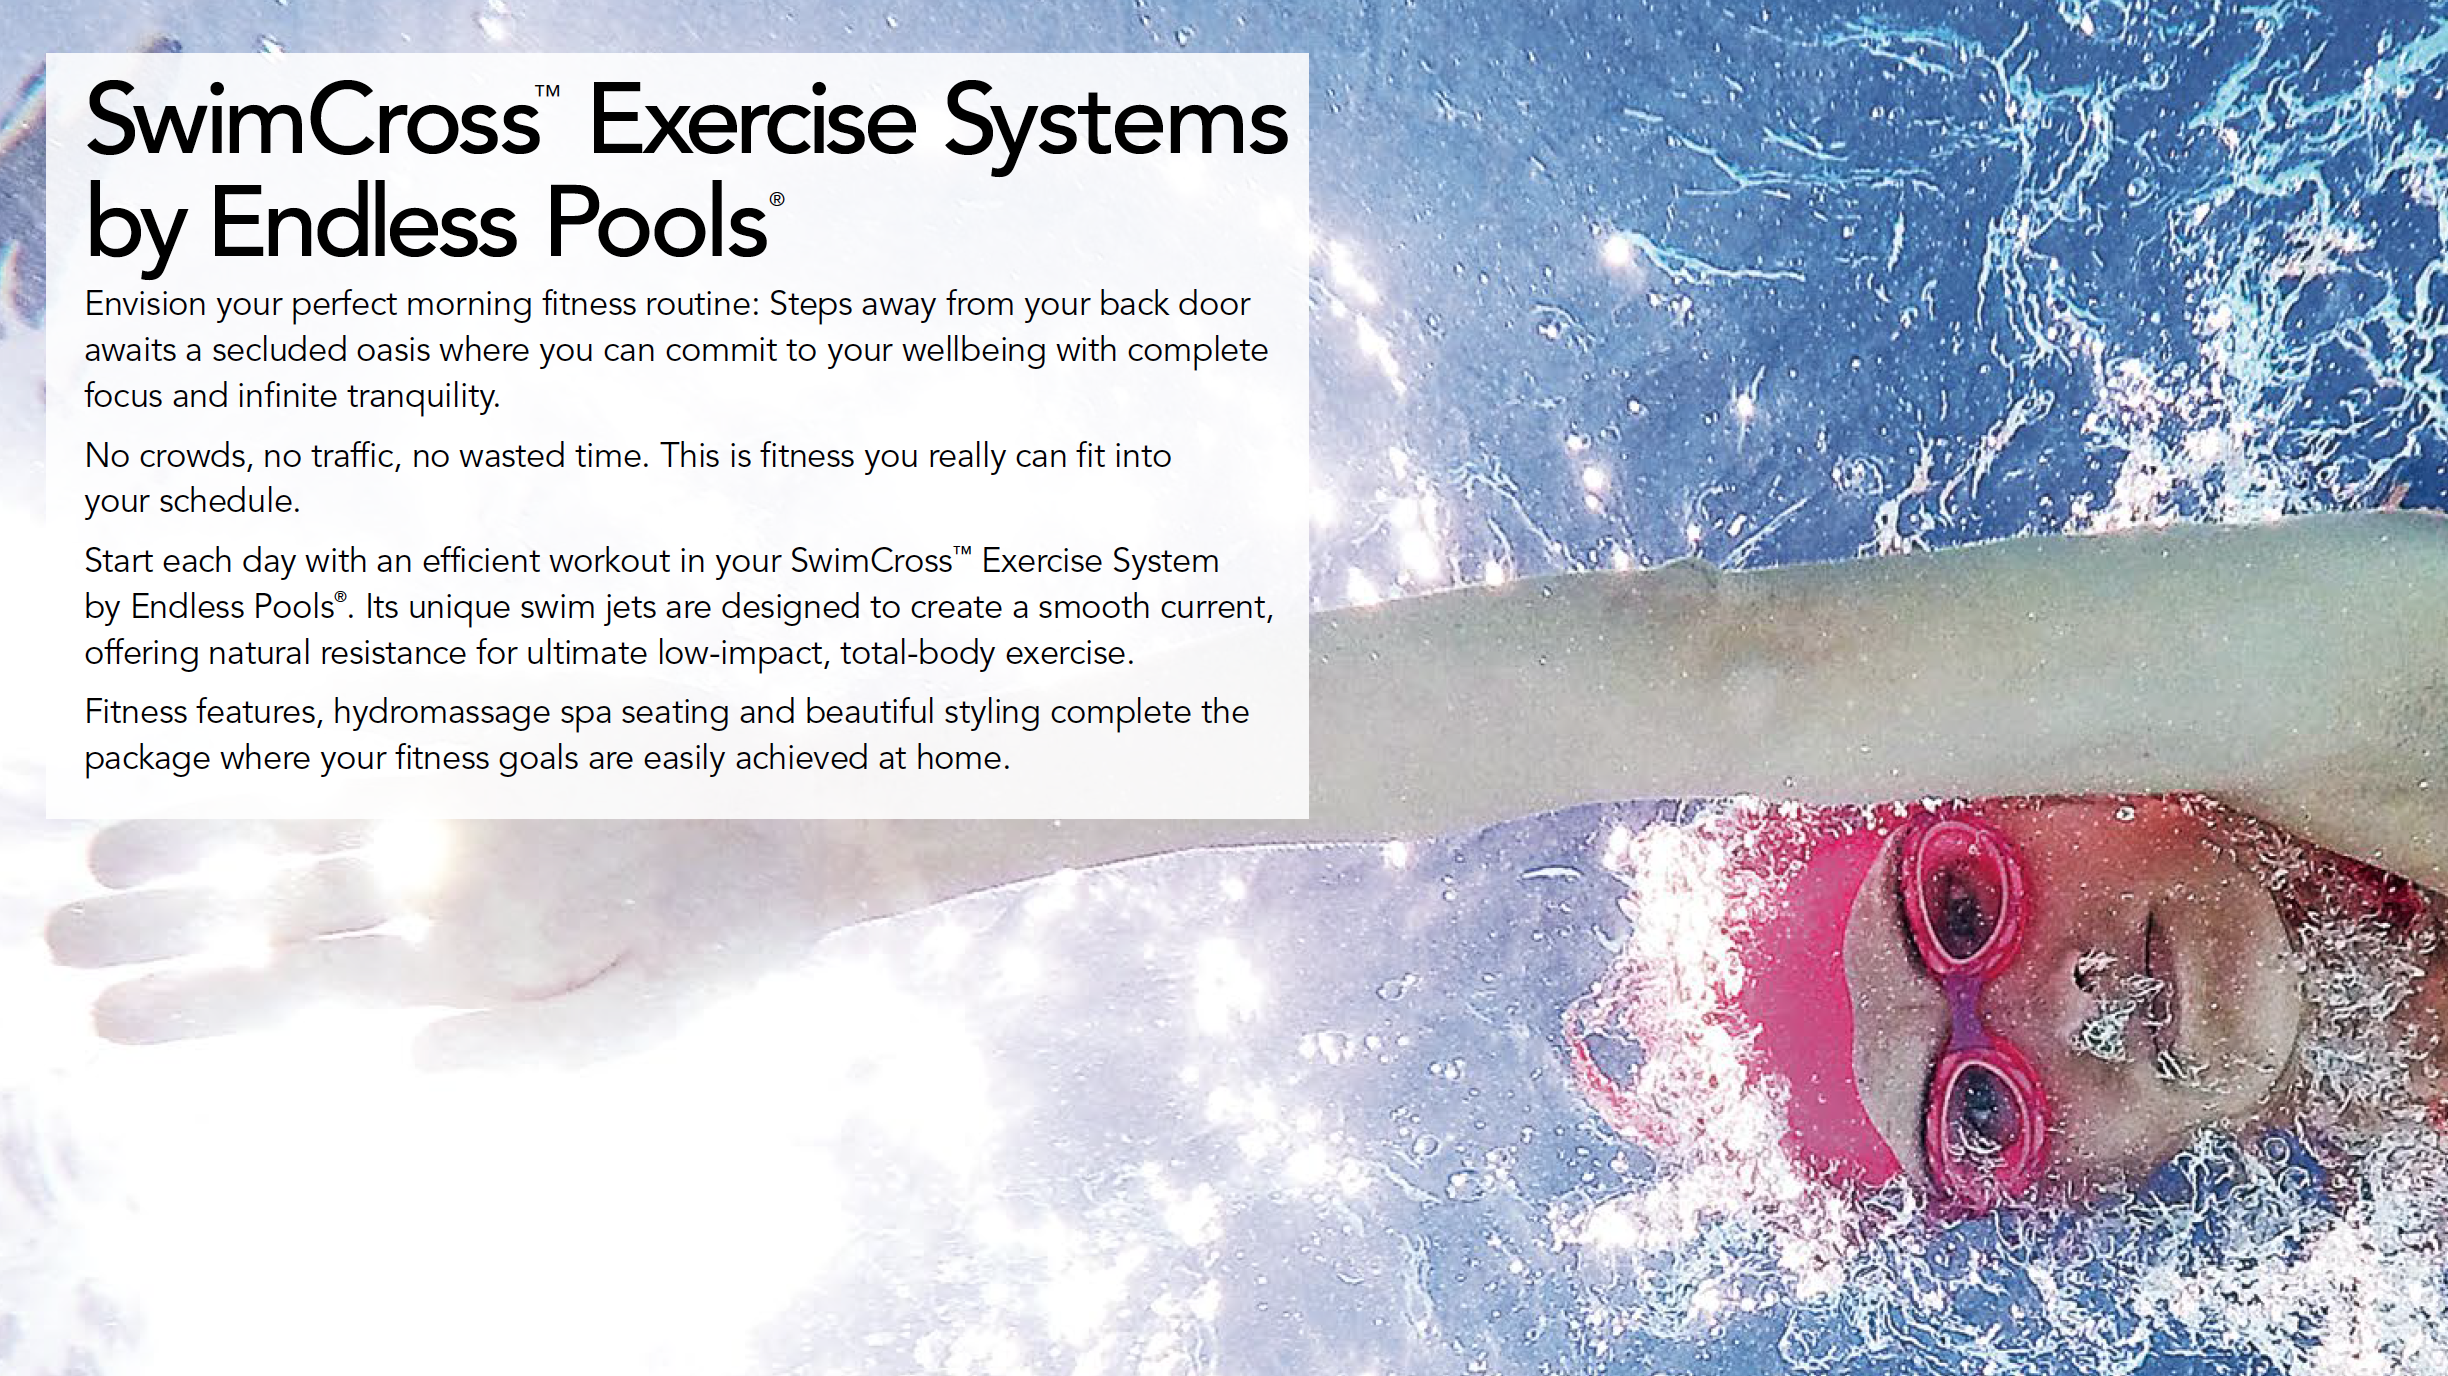 swim-spa-nz-endless-pools-2020-04-18-at-9.55.06-am-13.png